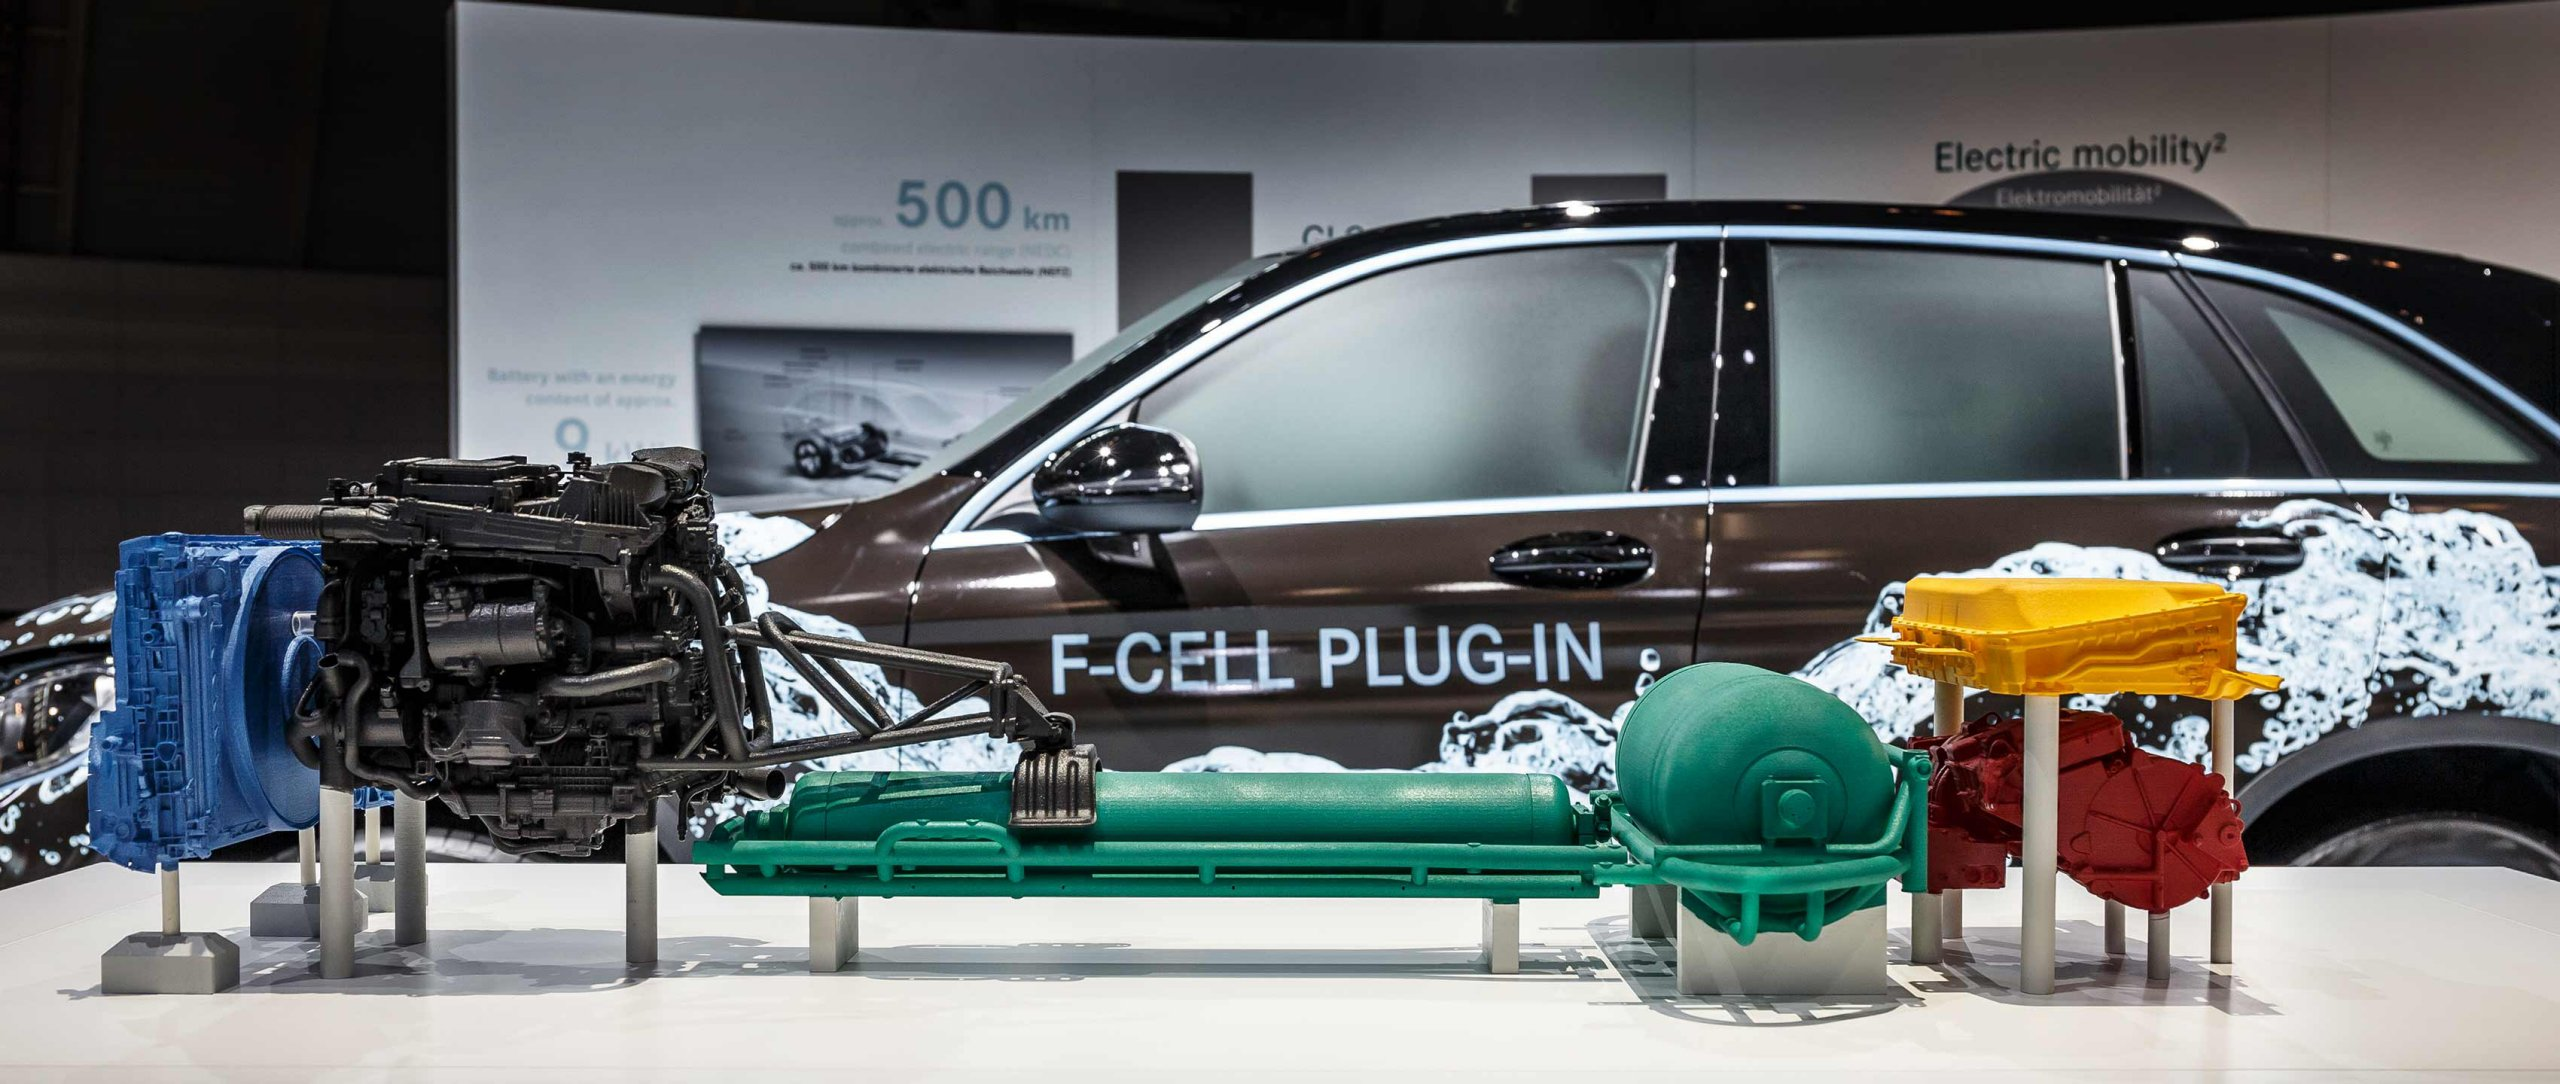 The drive system of the Mercedes-Benz GLC F-CELL (X 253). The next generation fuel cell vehicles runs on both hydrogen and electricity.